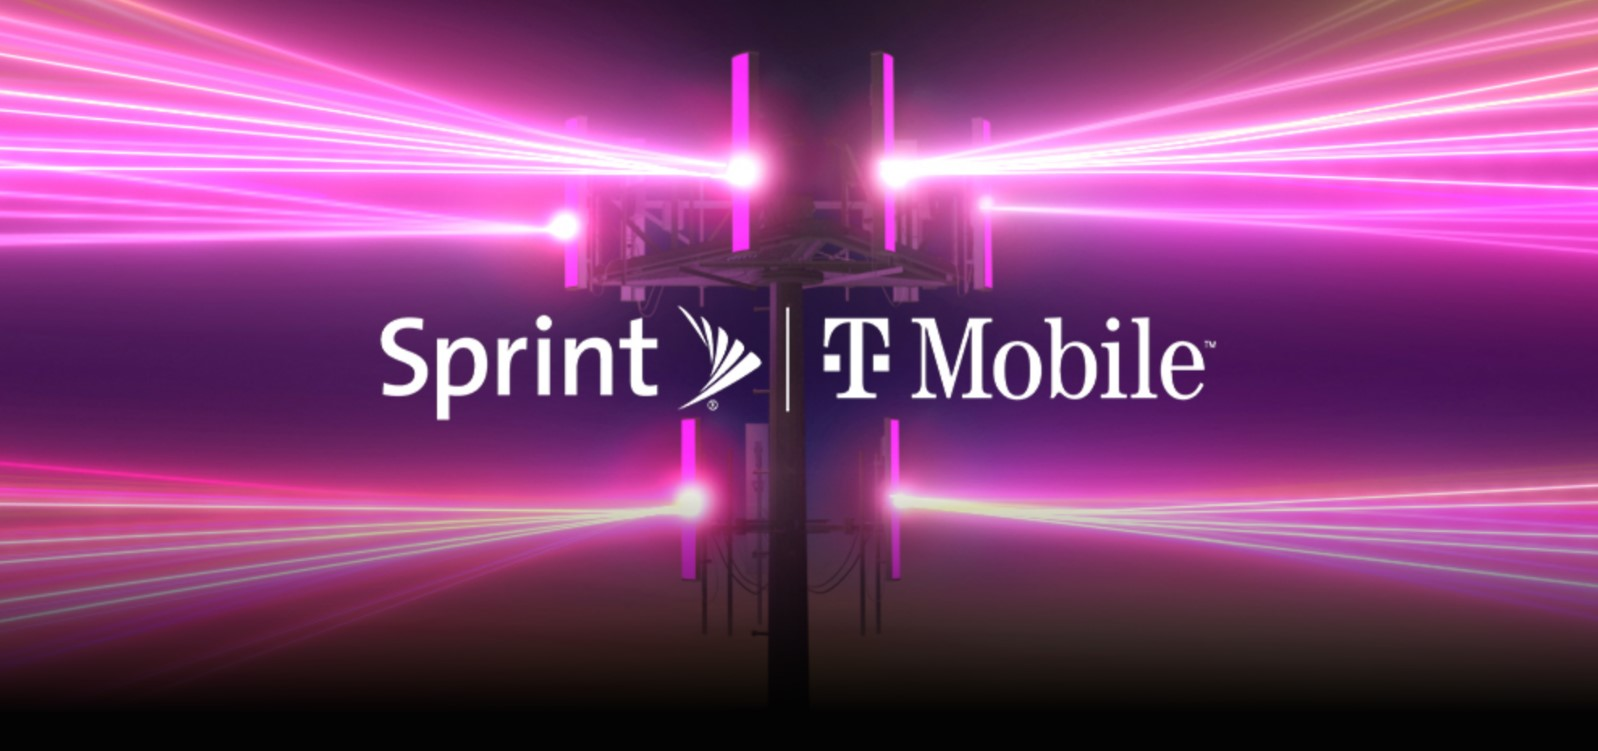 T-Mobile SIM cards now work with Sprint locked smartphones